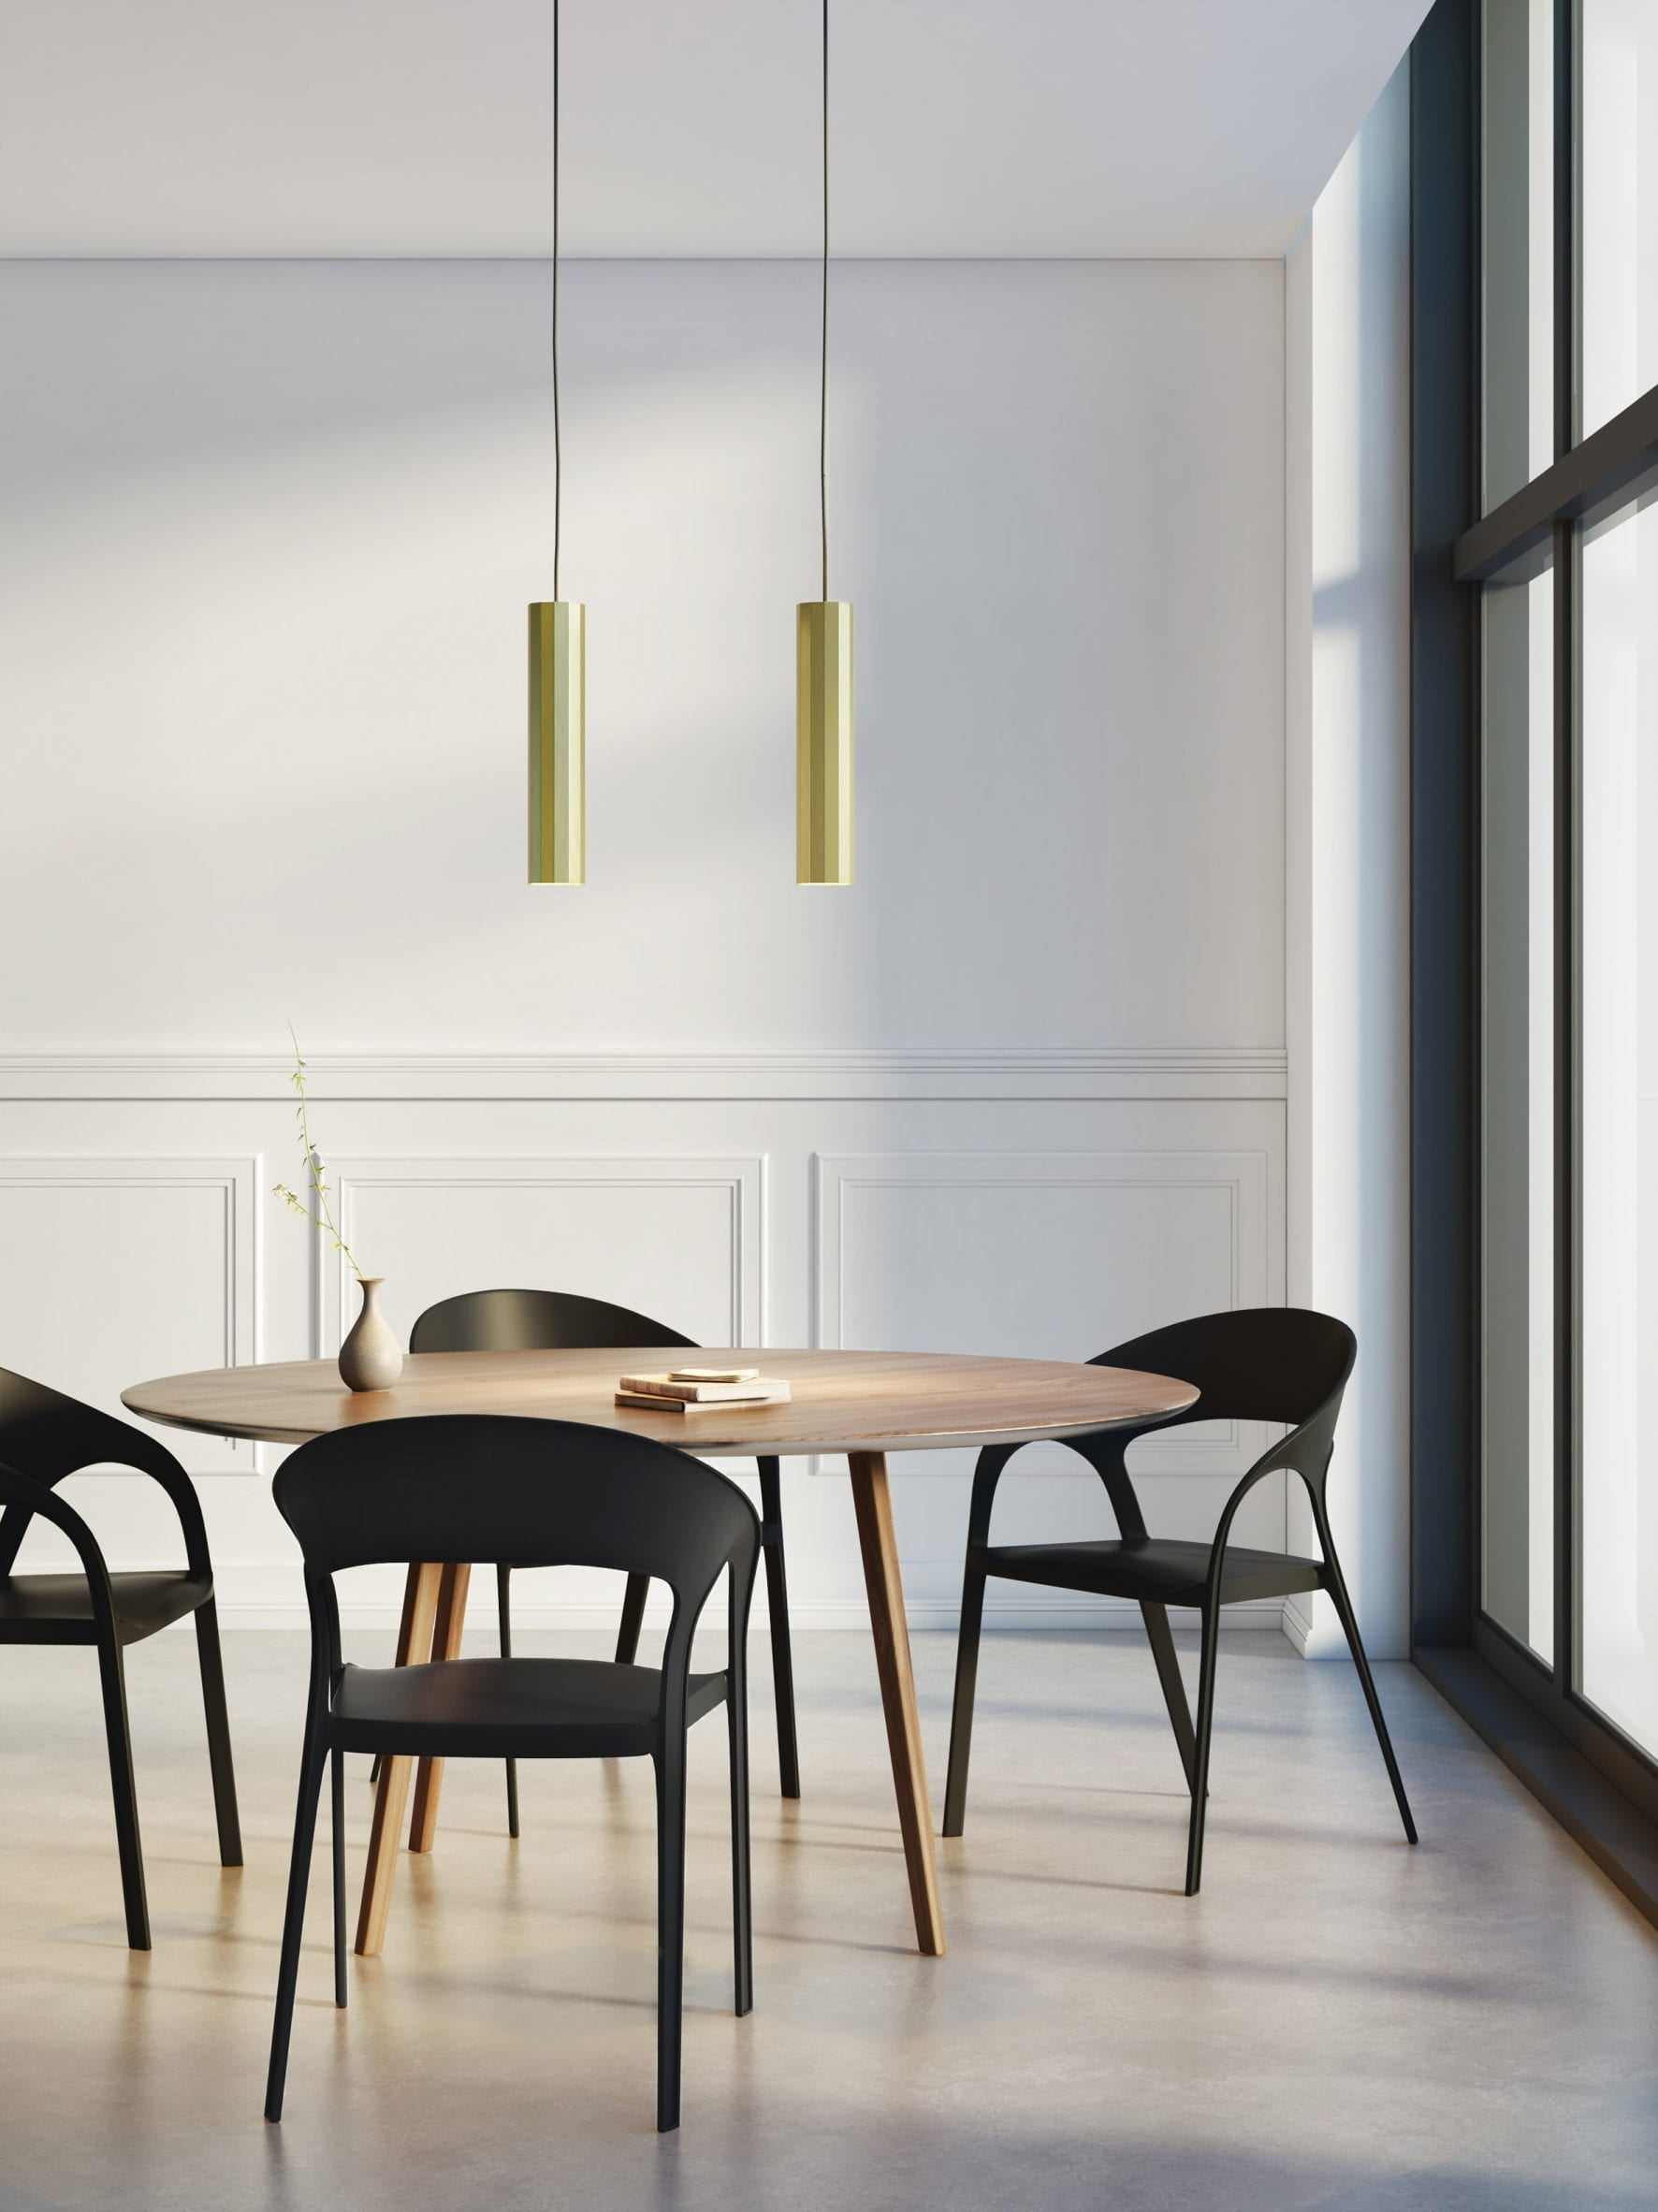 Hashira pendant lights by Astro Lighting suspended above a dining table